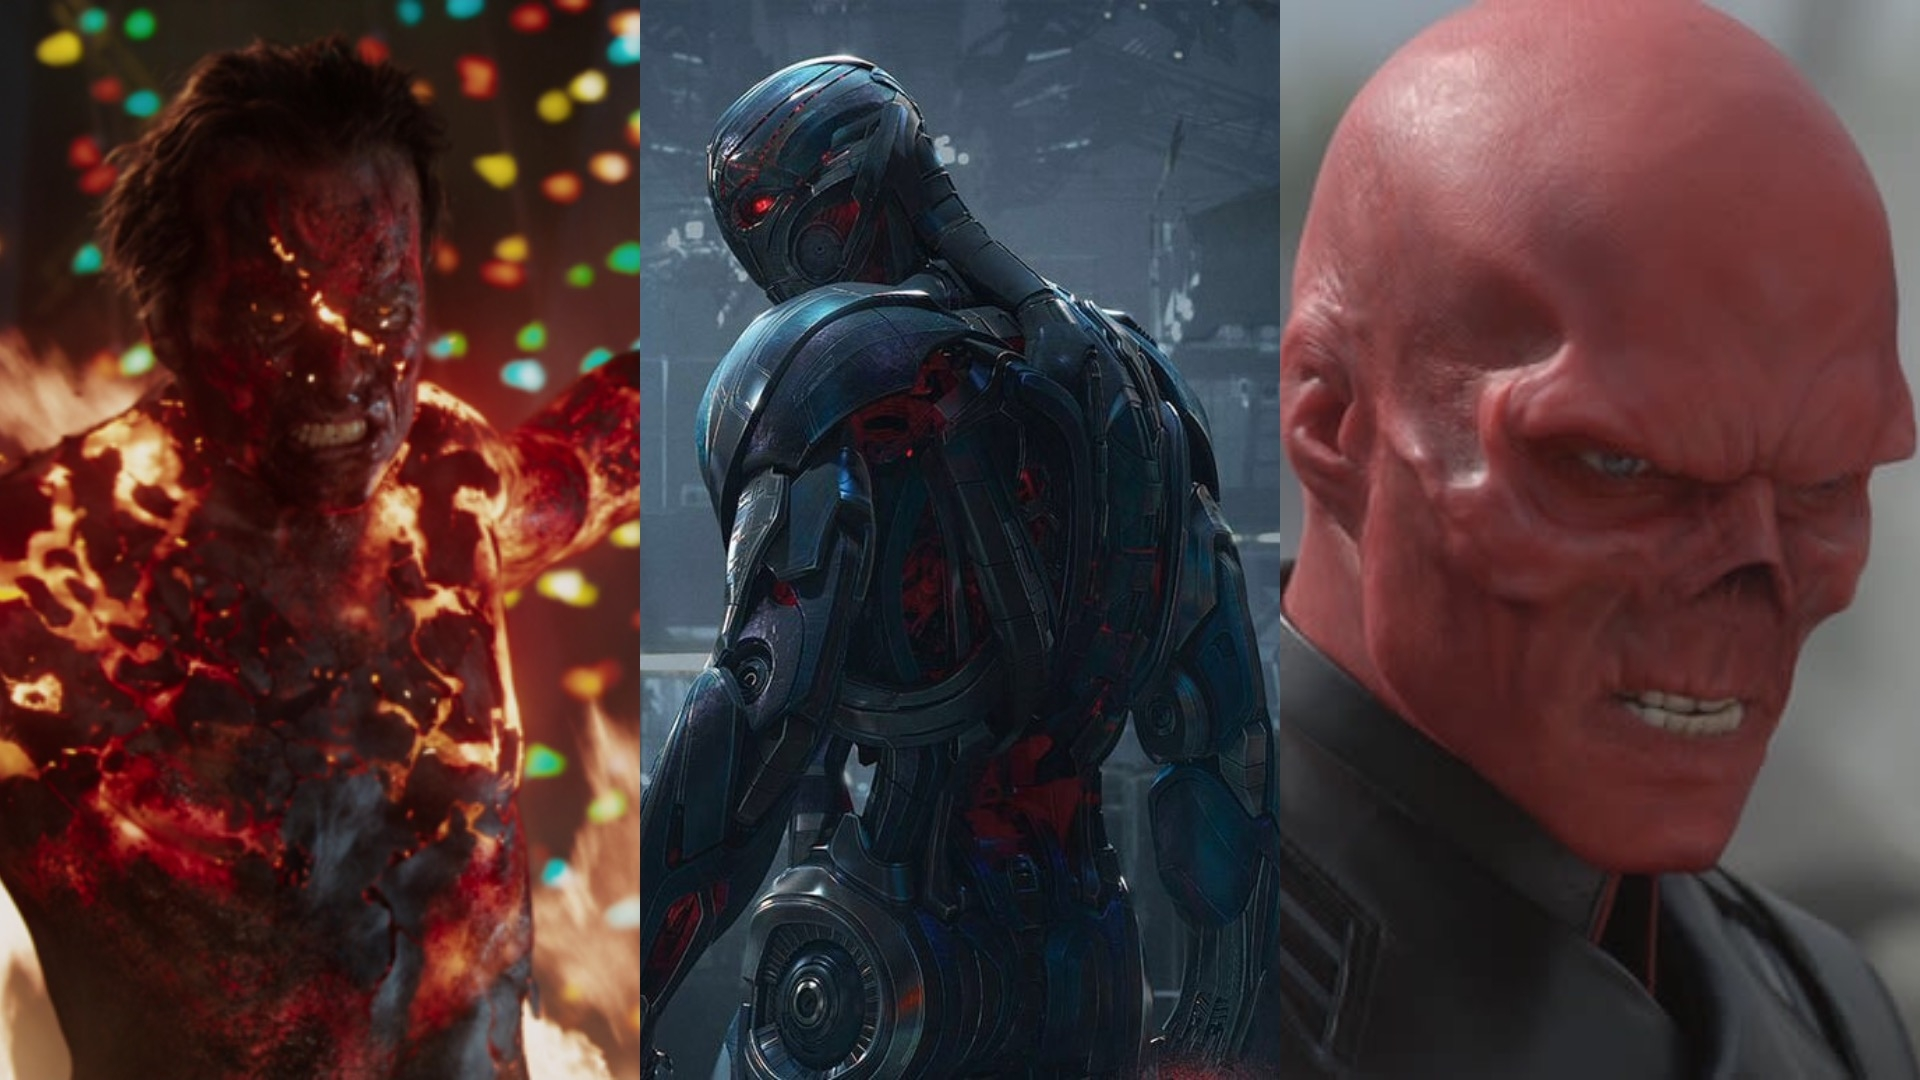 Guy Pearce as The Mandarin in Iron Man 3, James Spader as Ultron in Avengers: Age of Ultron, Hugo Weaving as Red Skull in Captain America: The First Avenger